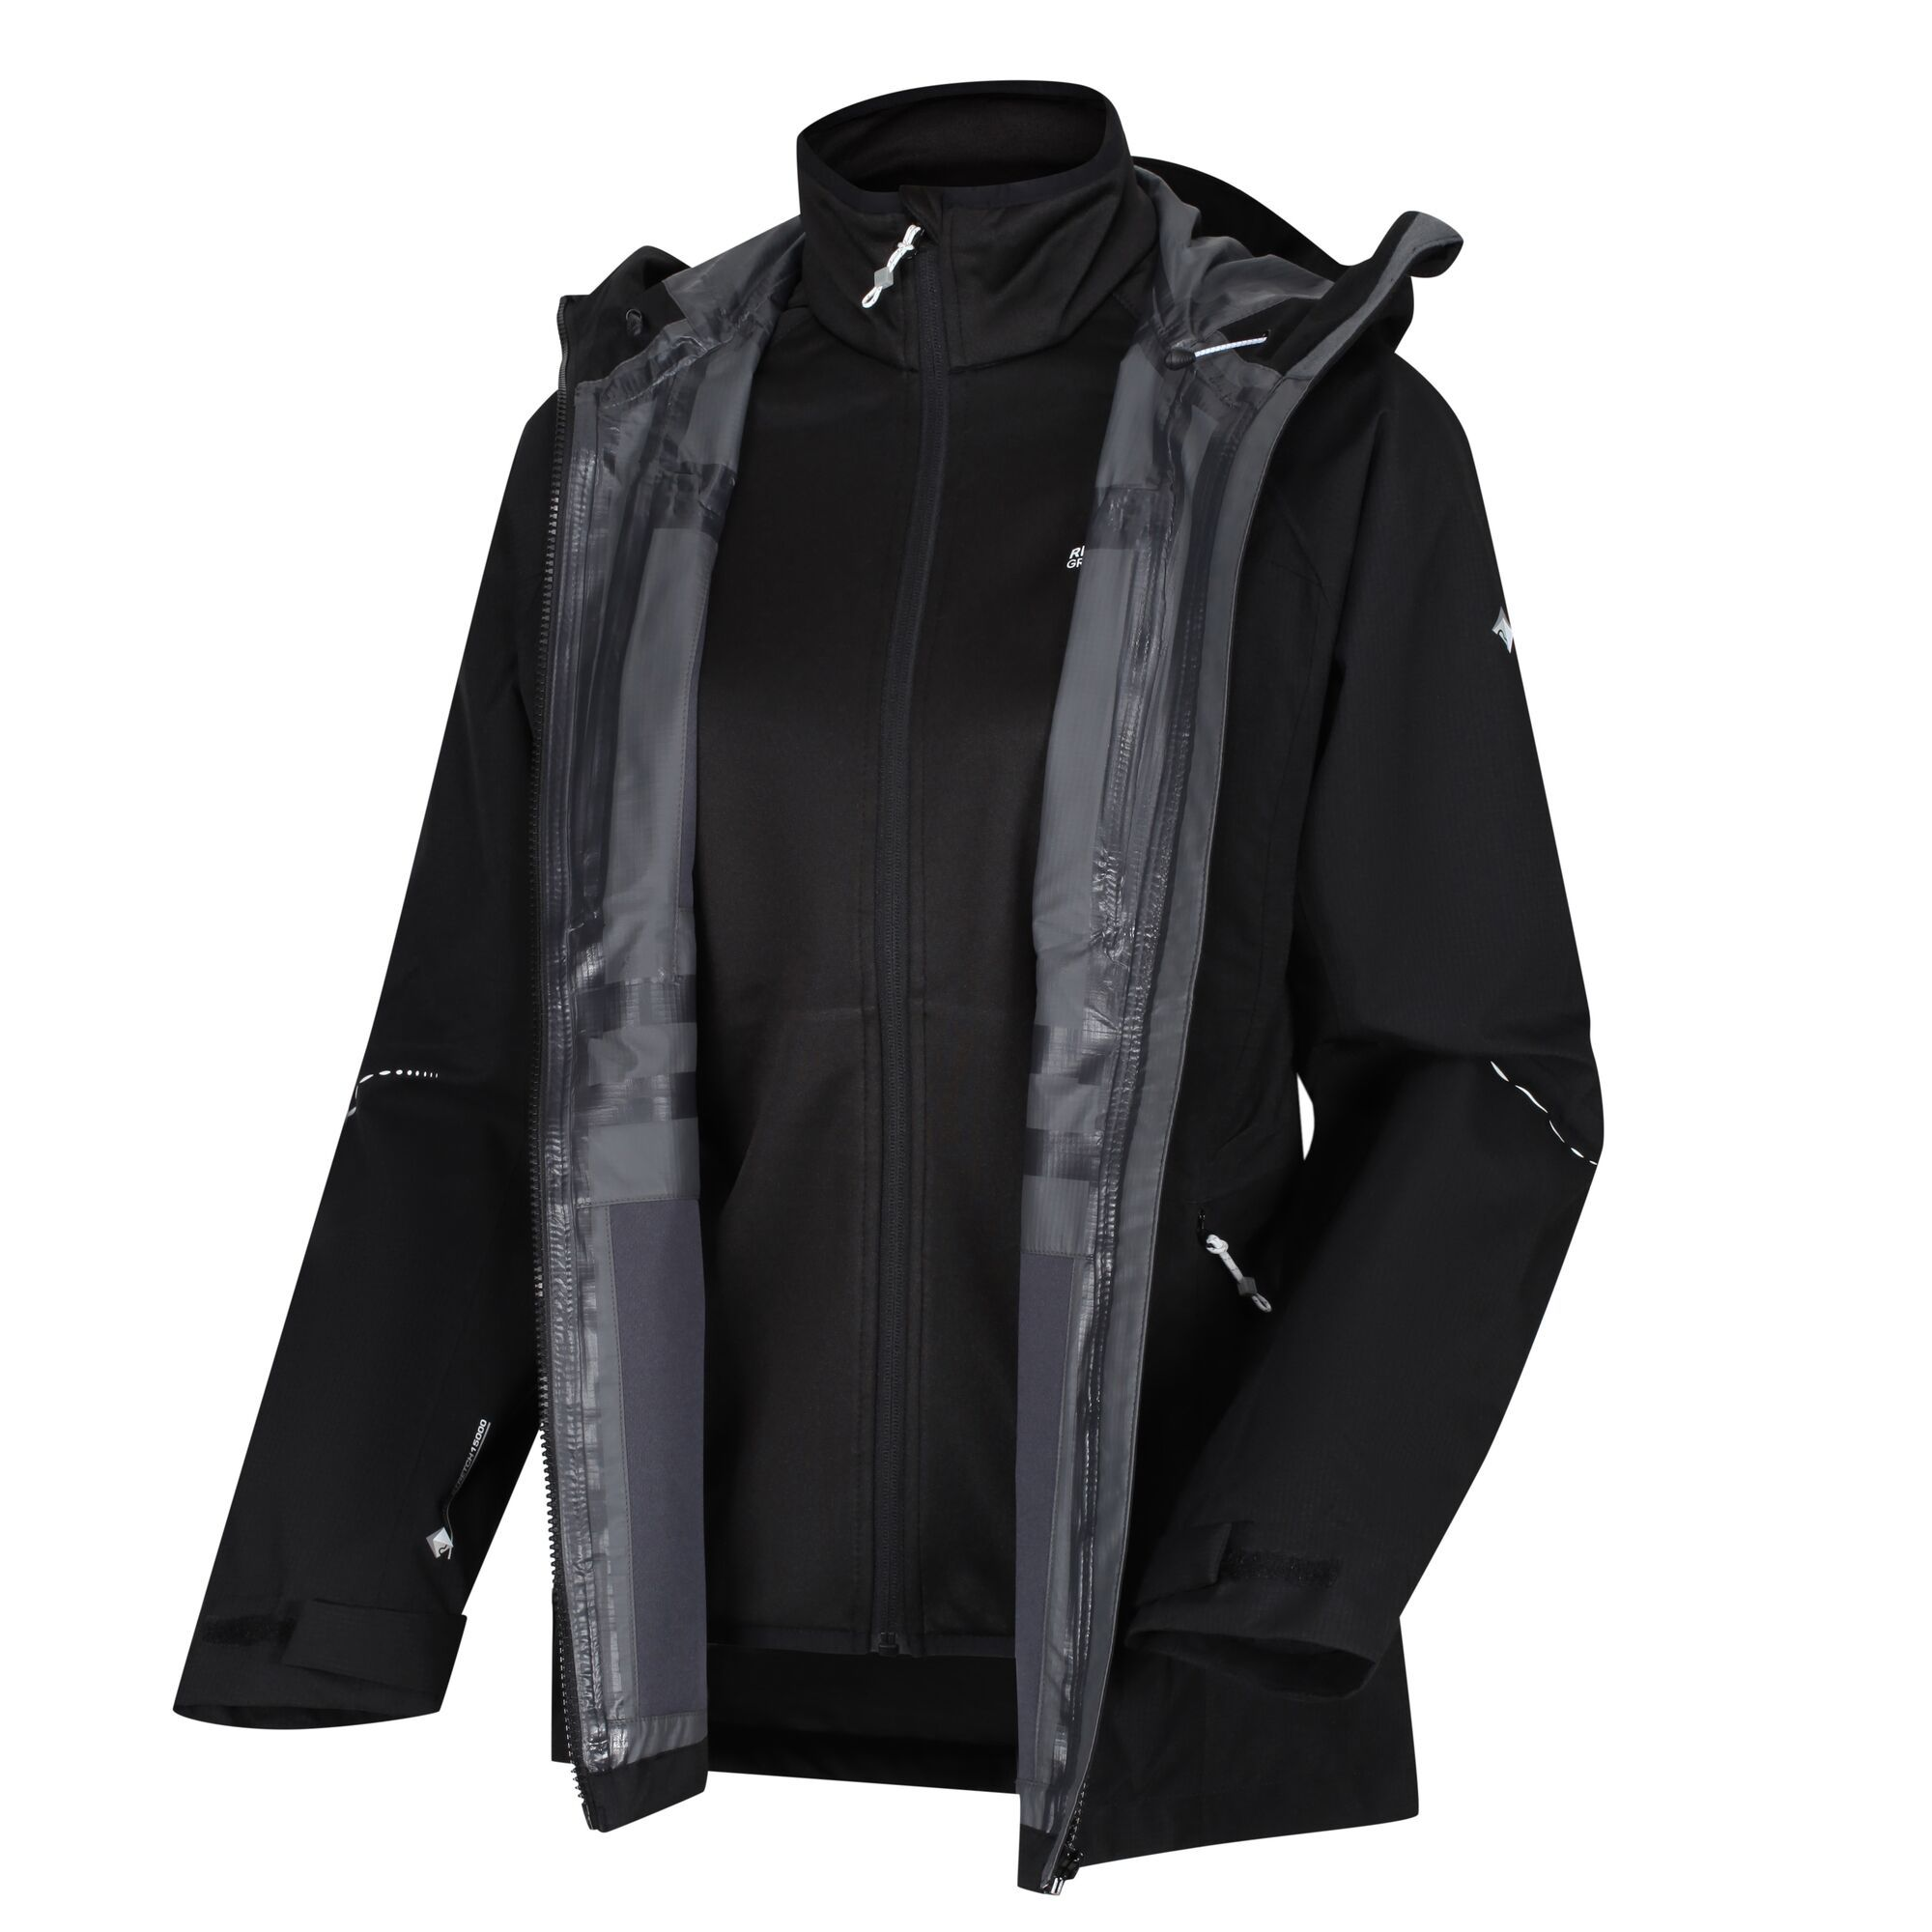 Women's 3 In 1 Waterproof jacket